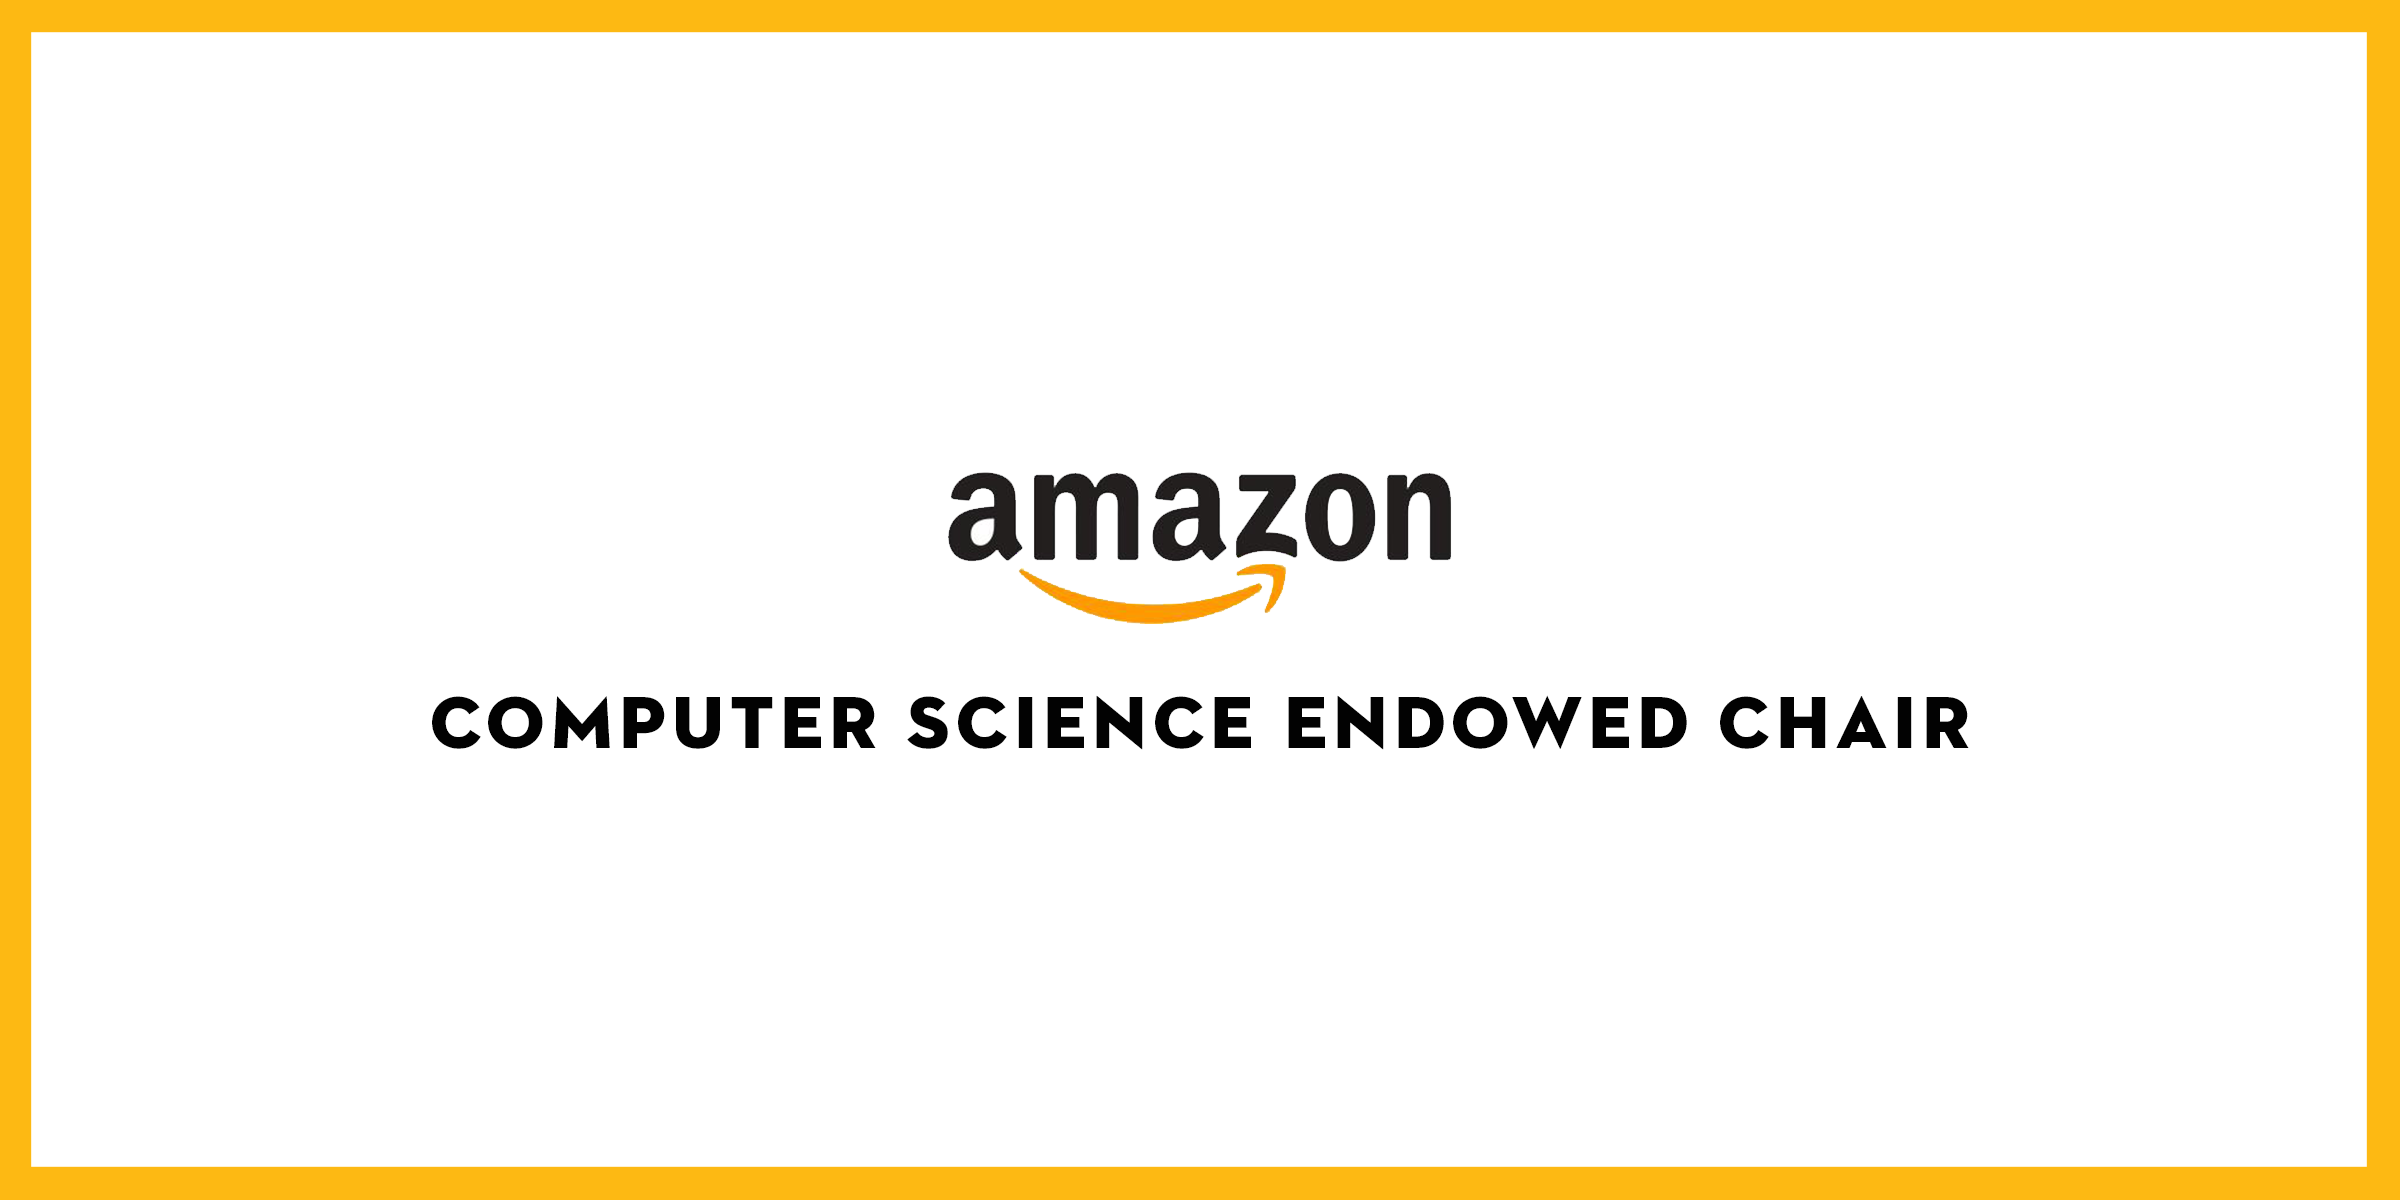 Amazon Endowed Computer Science Chair